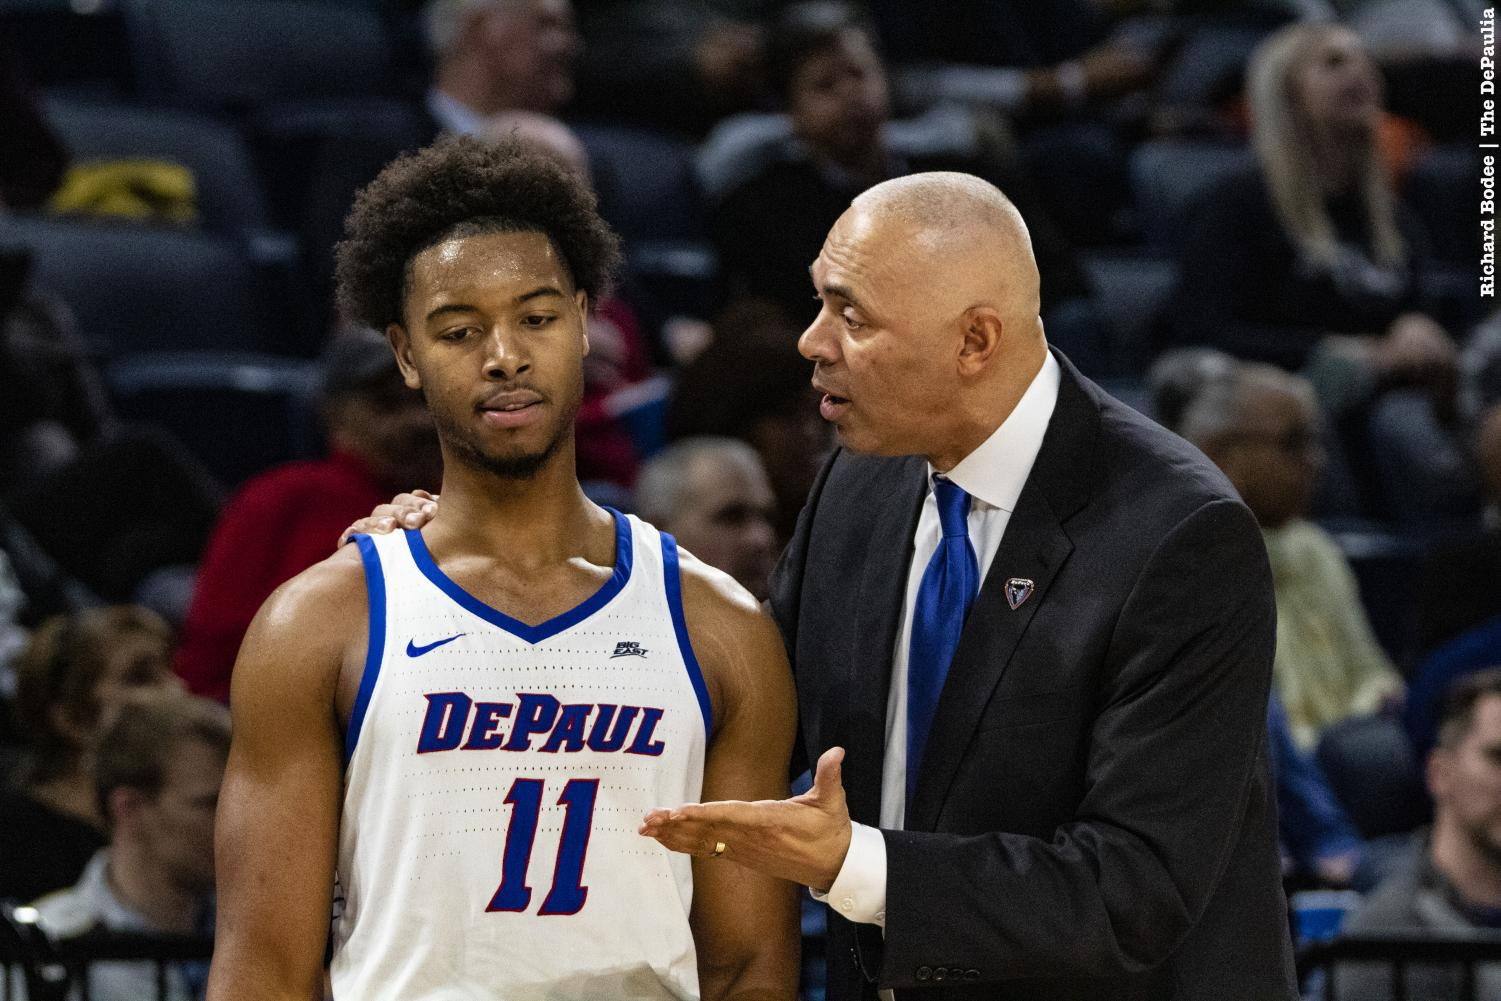 DePaul fell to Butler 87-69 at Wintrust Arena on Wednesday night, snapping a two-game winning streak. Richard Bodee I The DePaulia